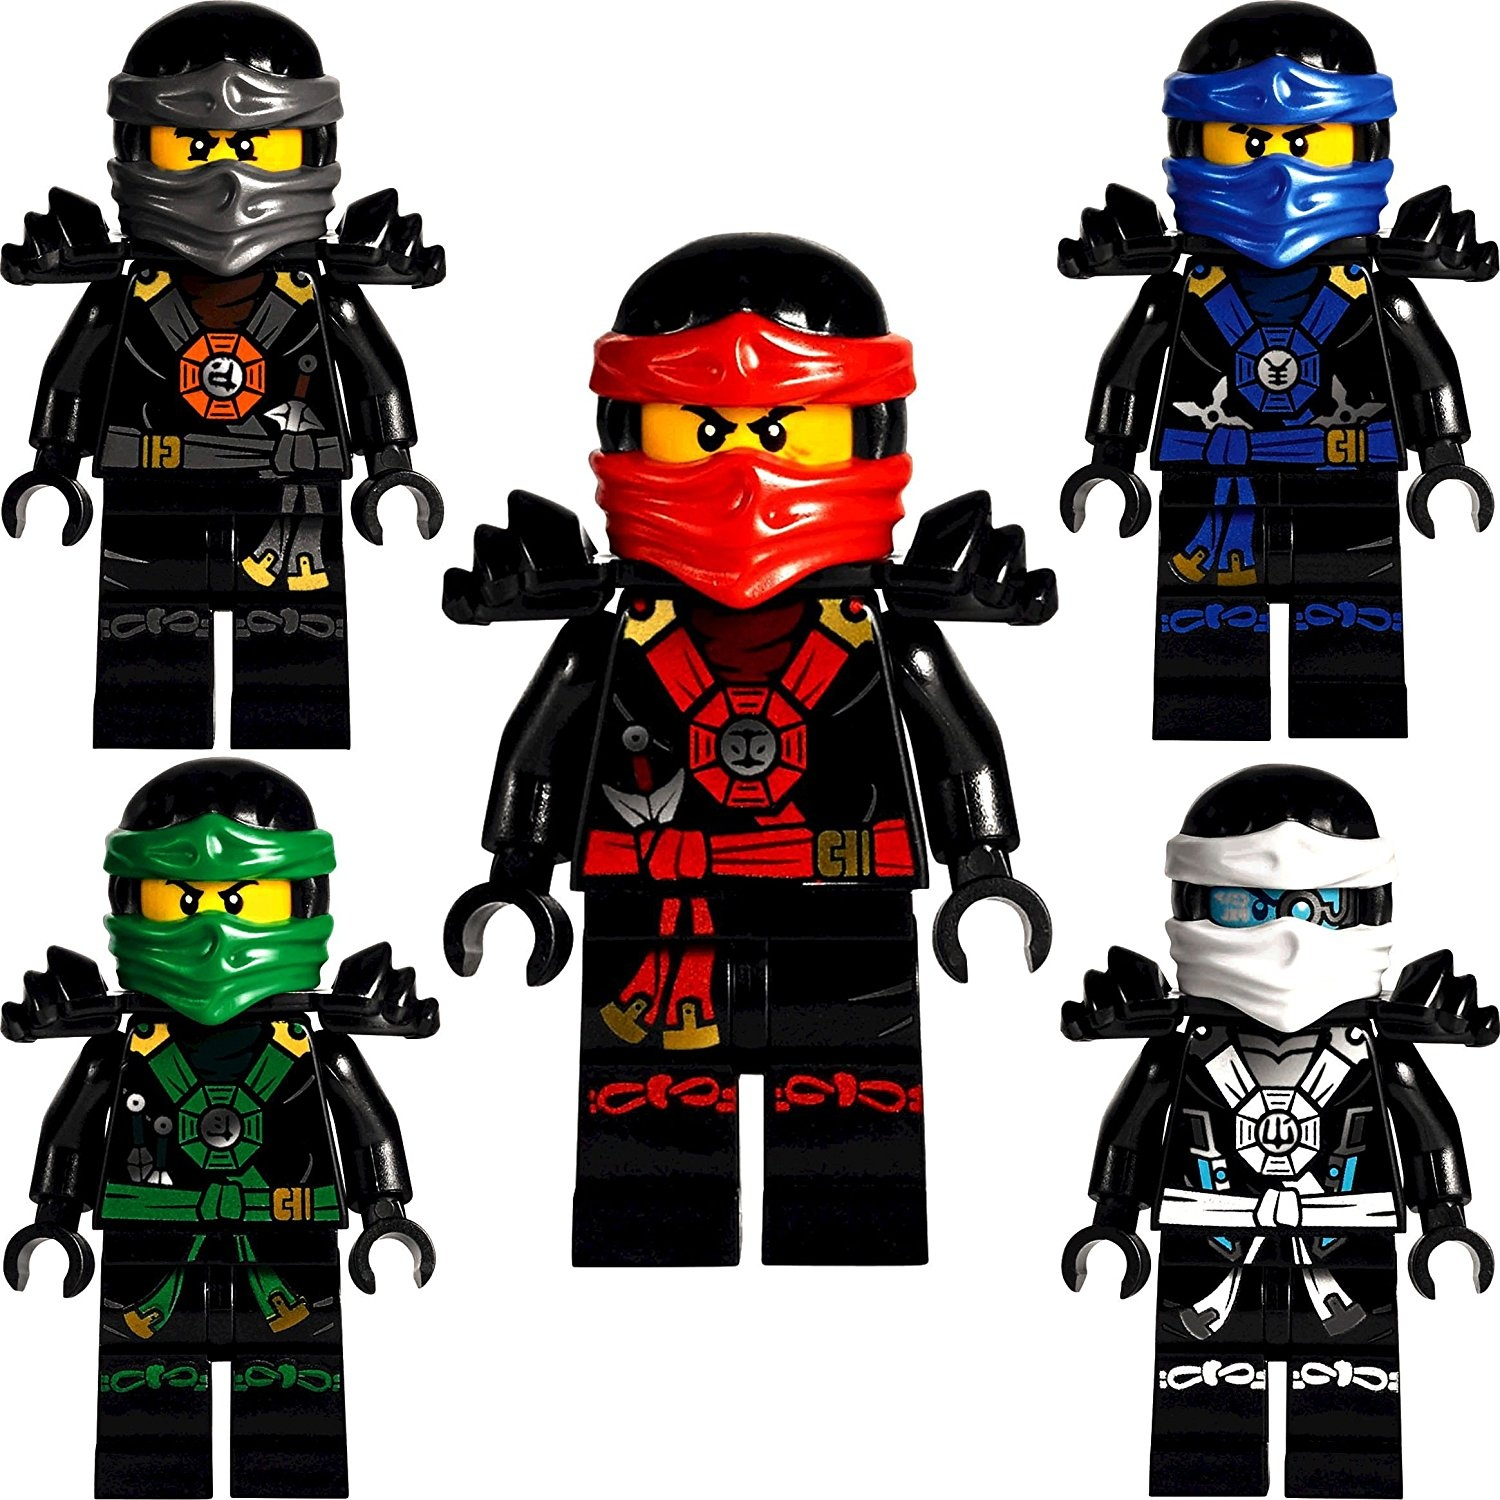 Lego Ninjago Set Of 5 Minifigures Deepstone Kai Lloyd Jay Zane And Cole From Set 70751 Lego Shop Online For Toys In Australia